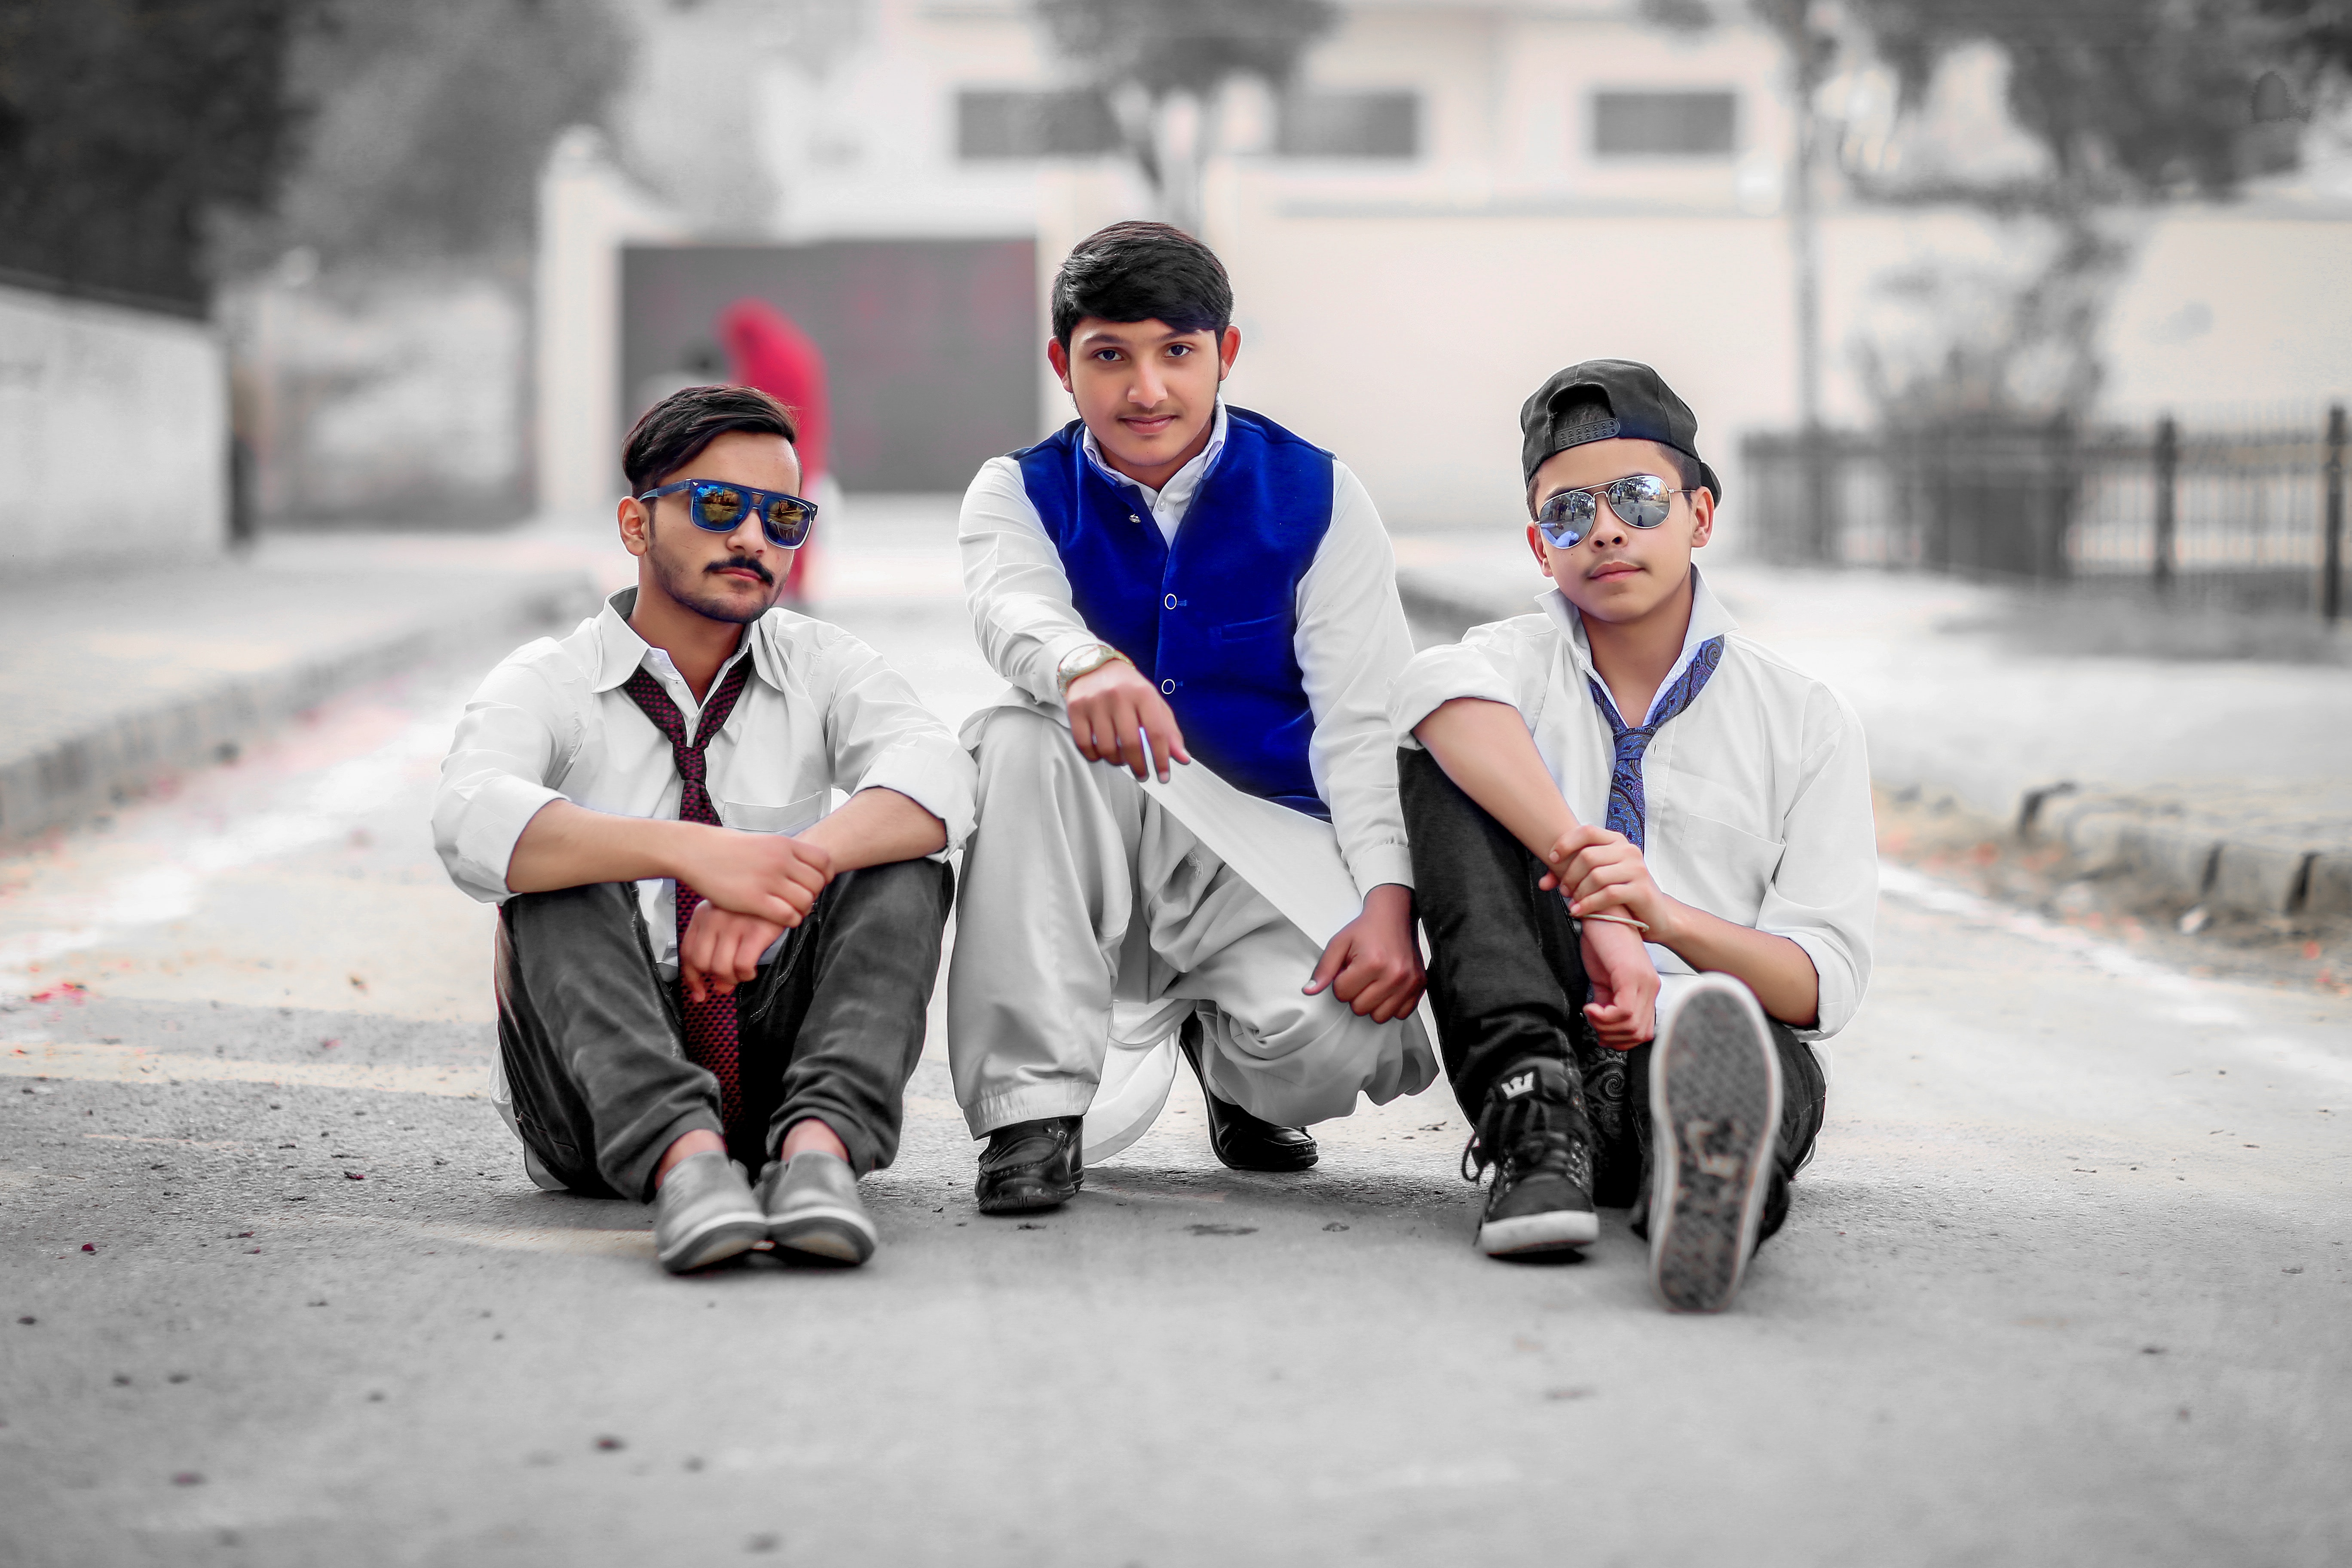 Three Men Sitting on Gray Concrete Road, Road, Young, Wear, Urban, HQ Photo